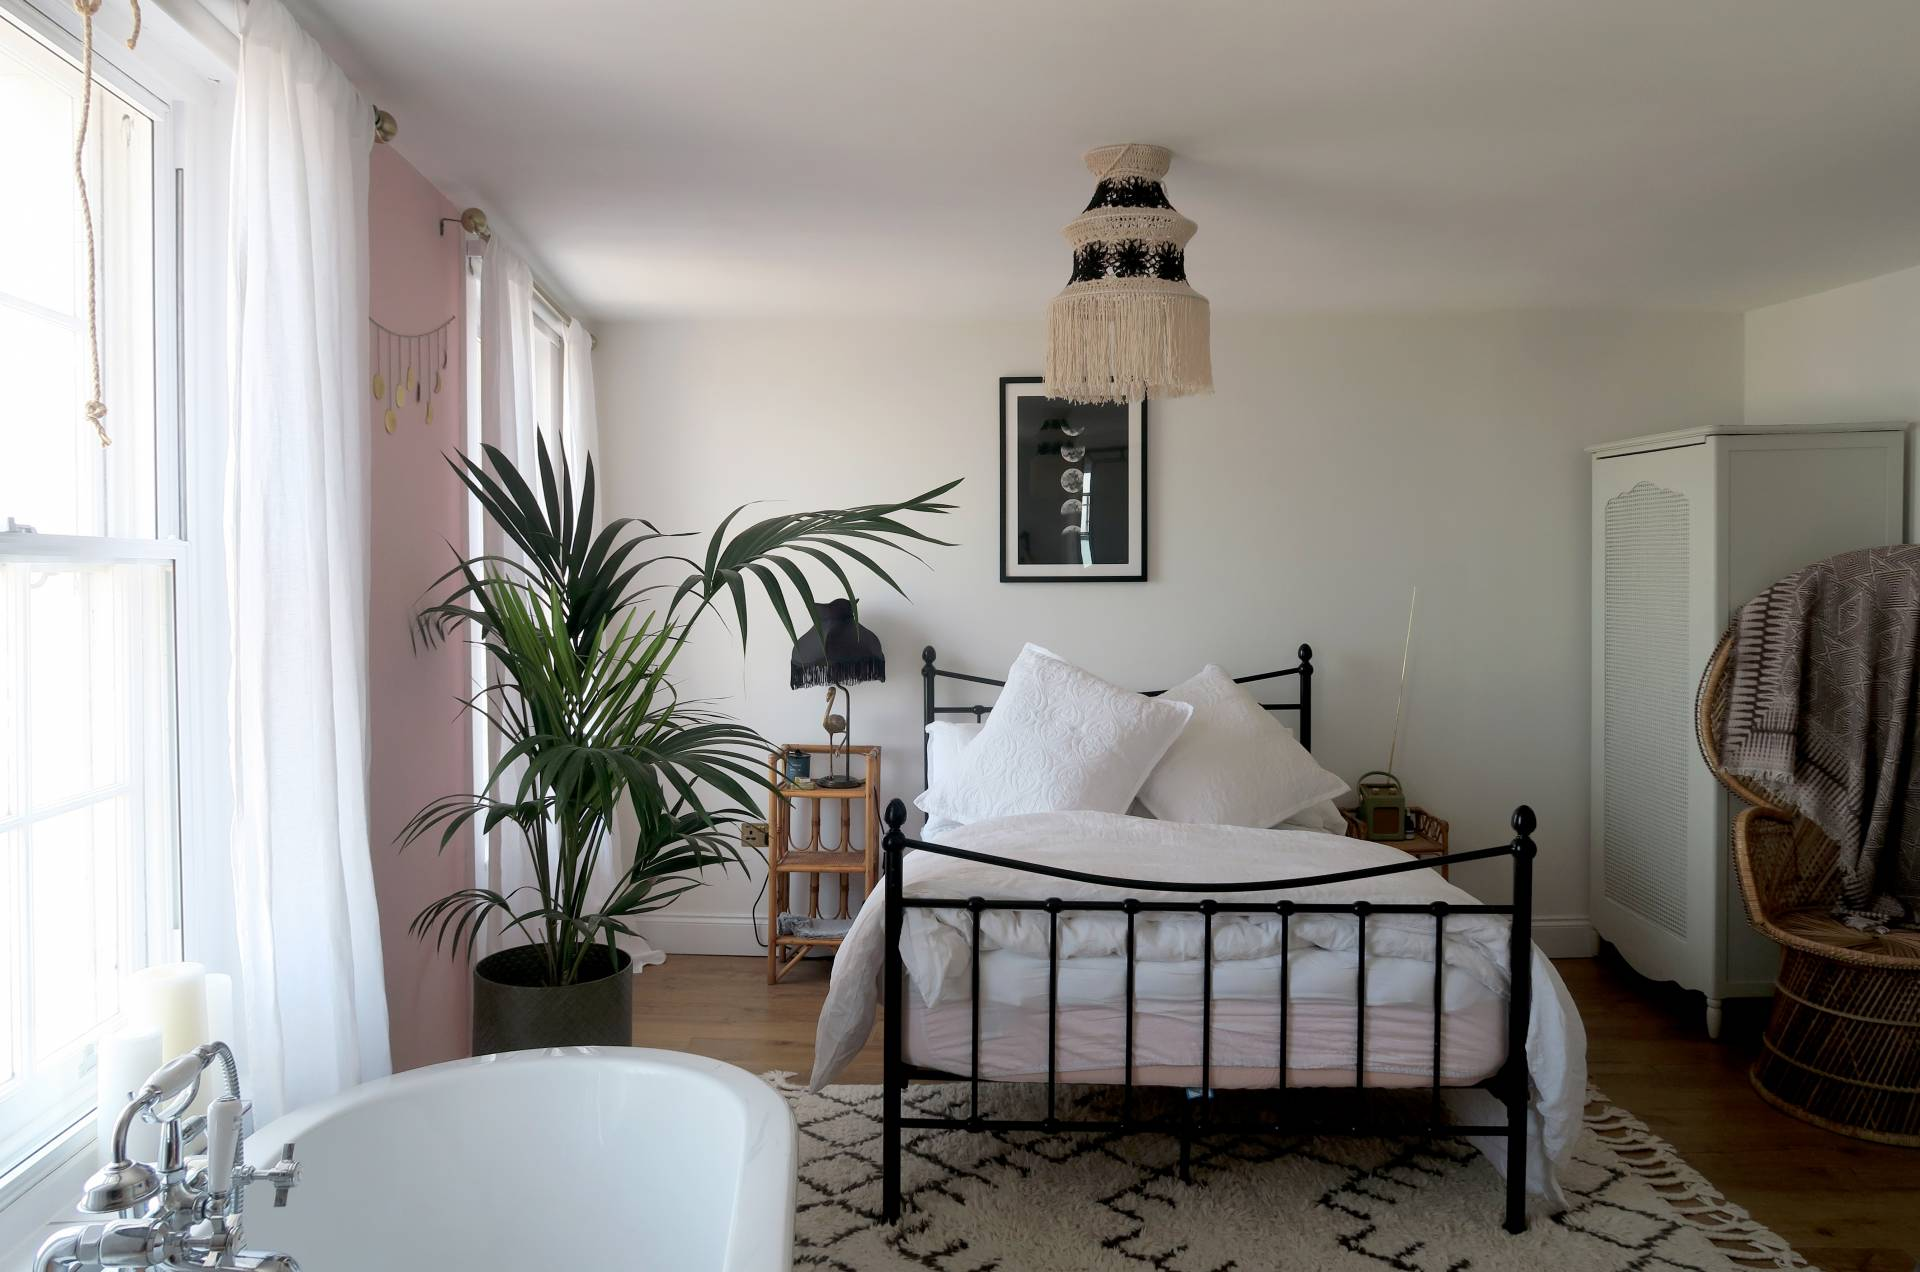 The Well airbnb Margate